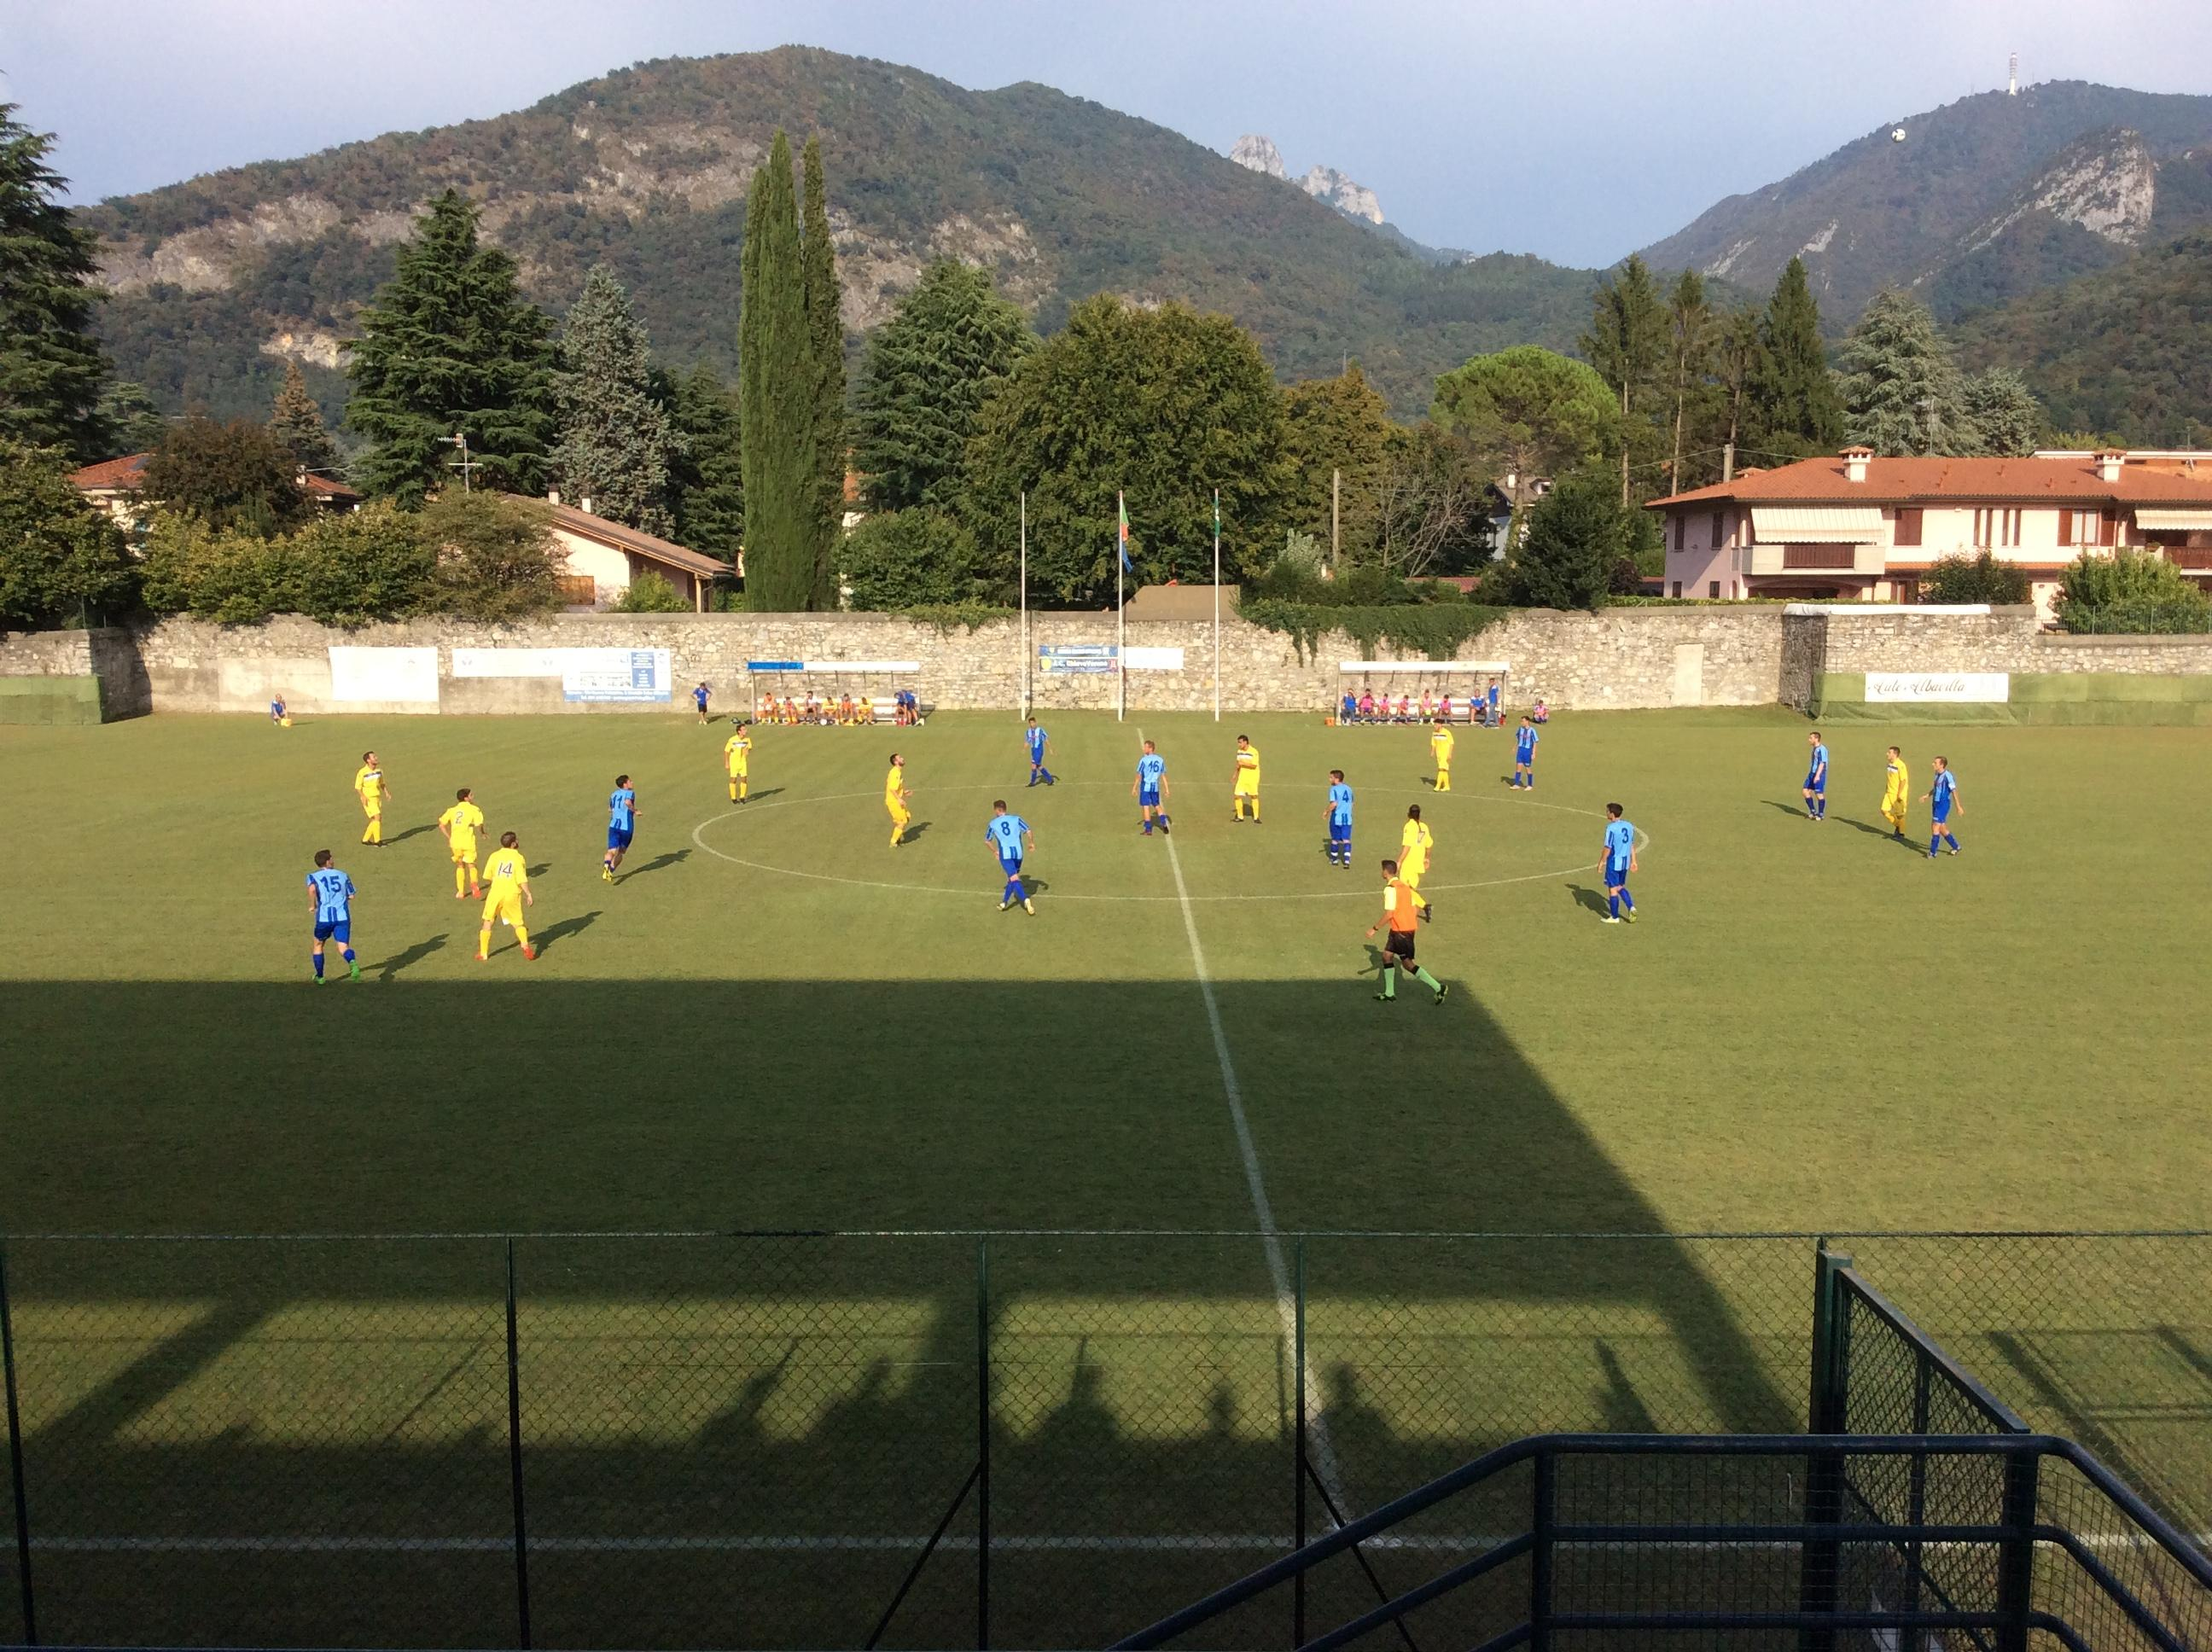 Giovanile Canzese - Olympic Morbegno 2-2